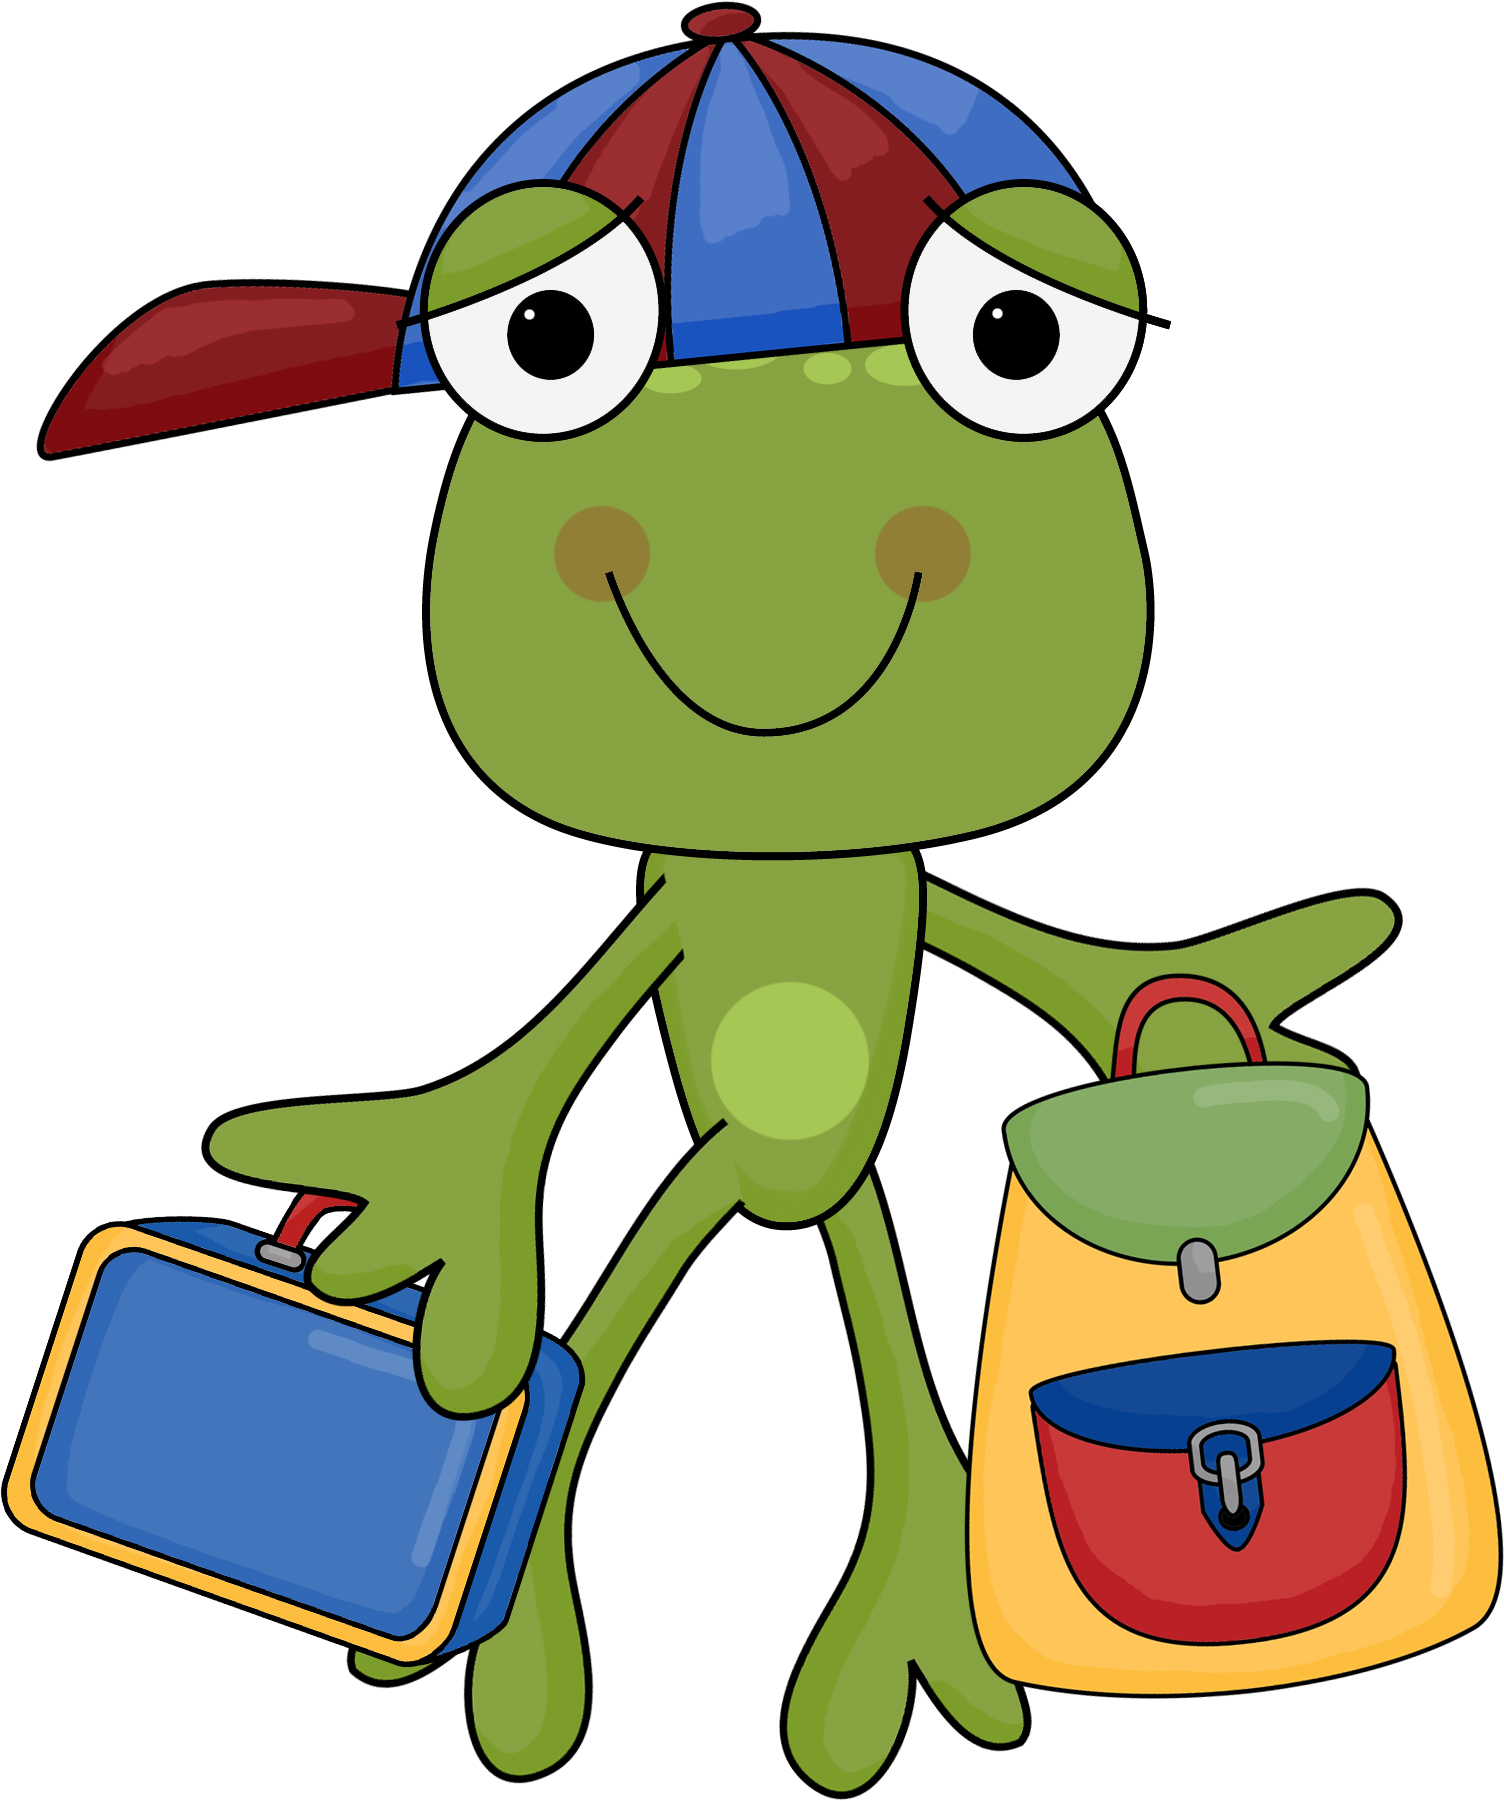 Kermit the frog clipart kid.